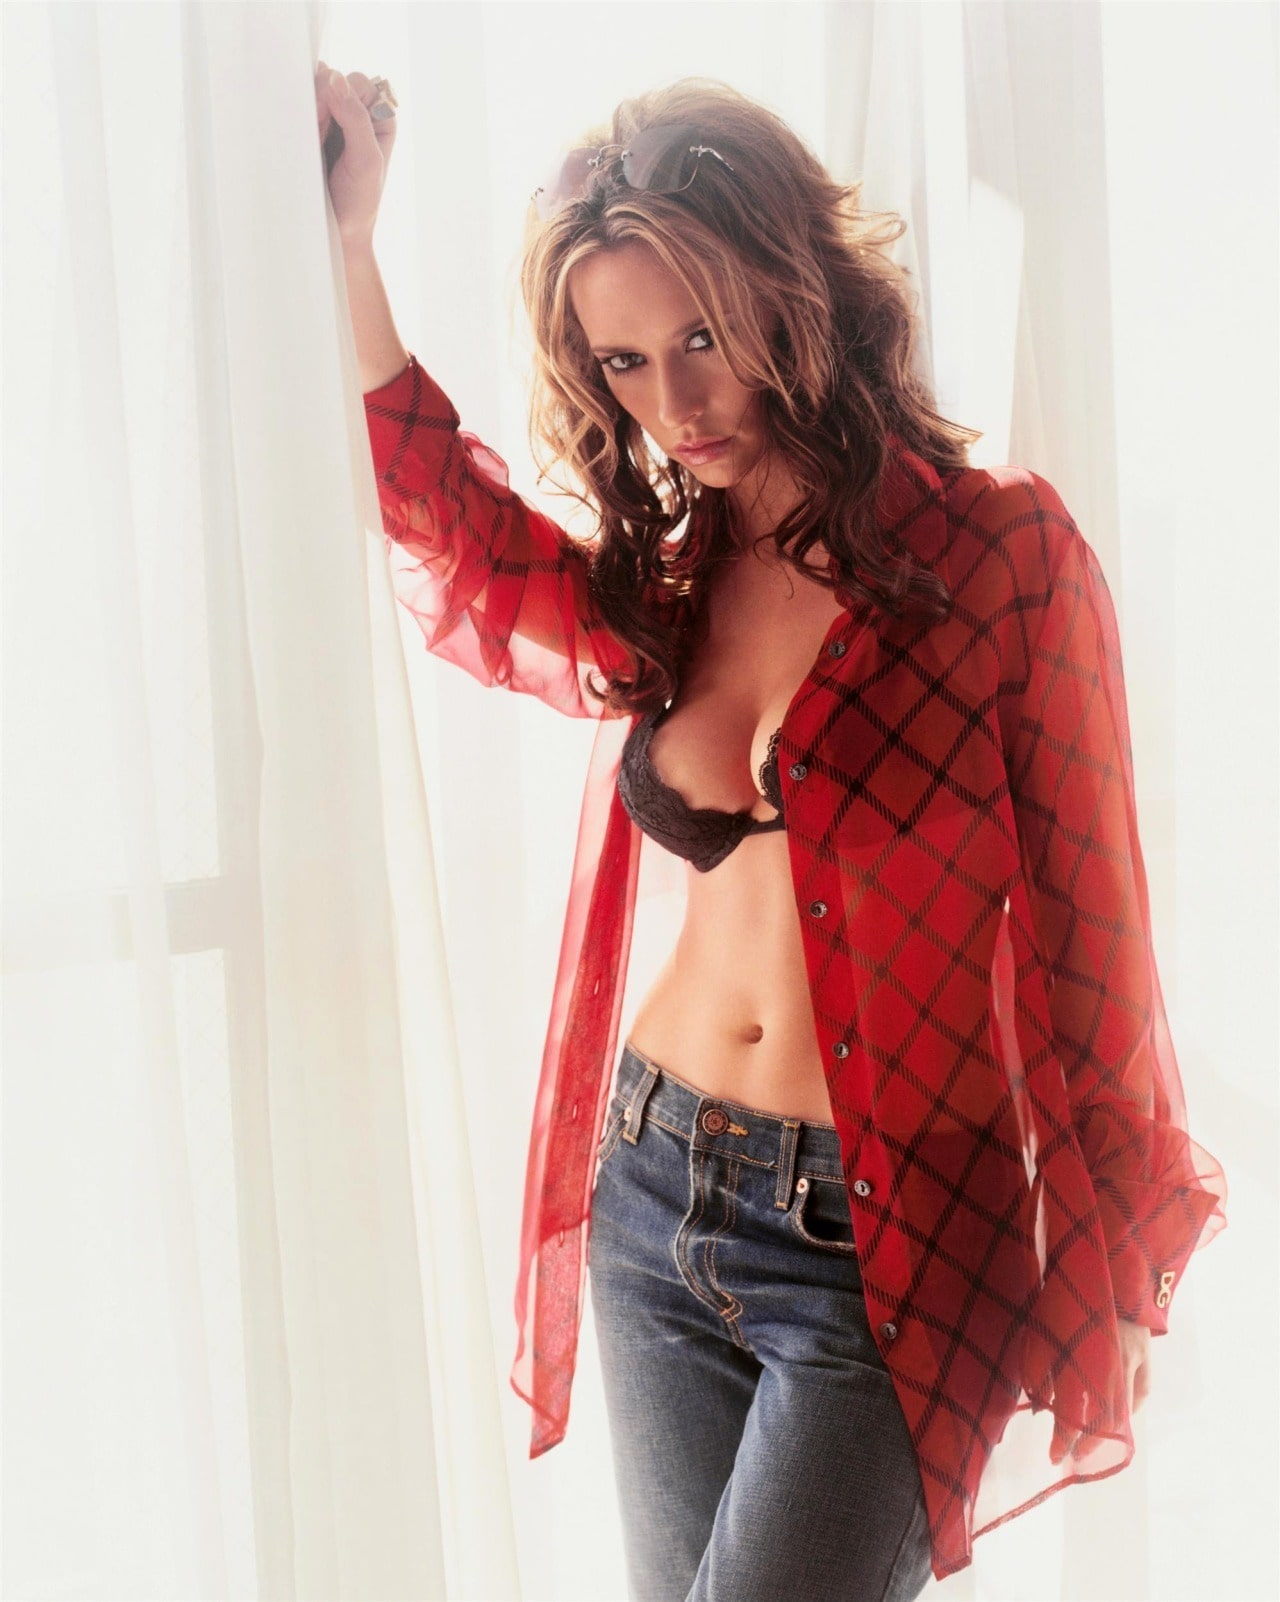 Jennifer Love Hewitt Hot Photoshoot